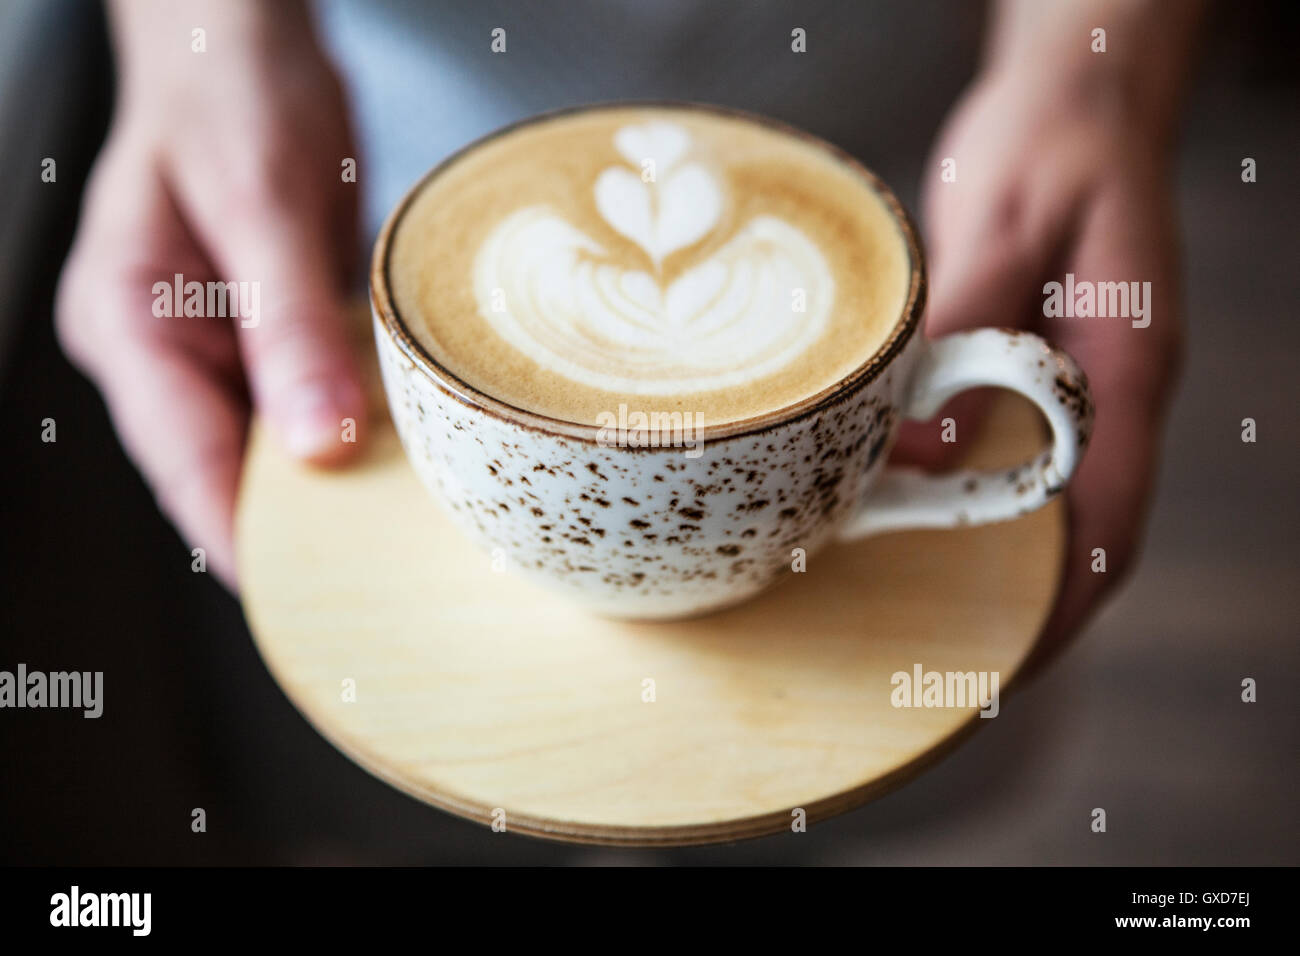 Coffee cup. Latte art in cafe. Barista offering coffee - Stock Image